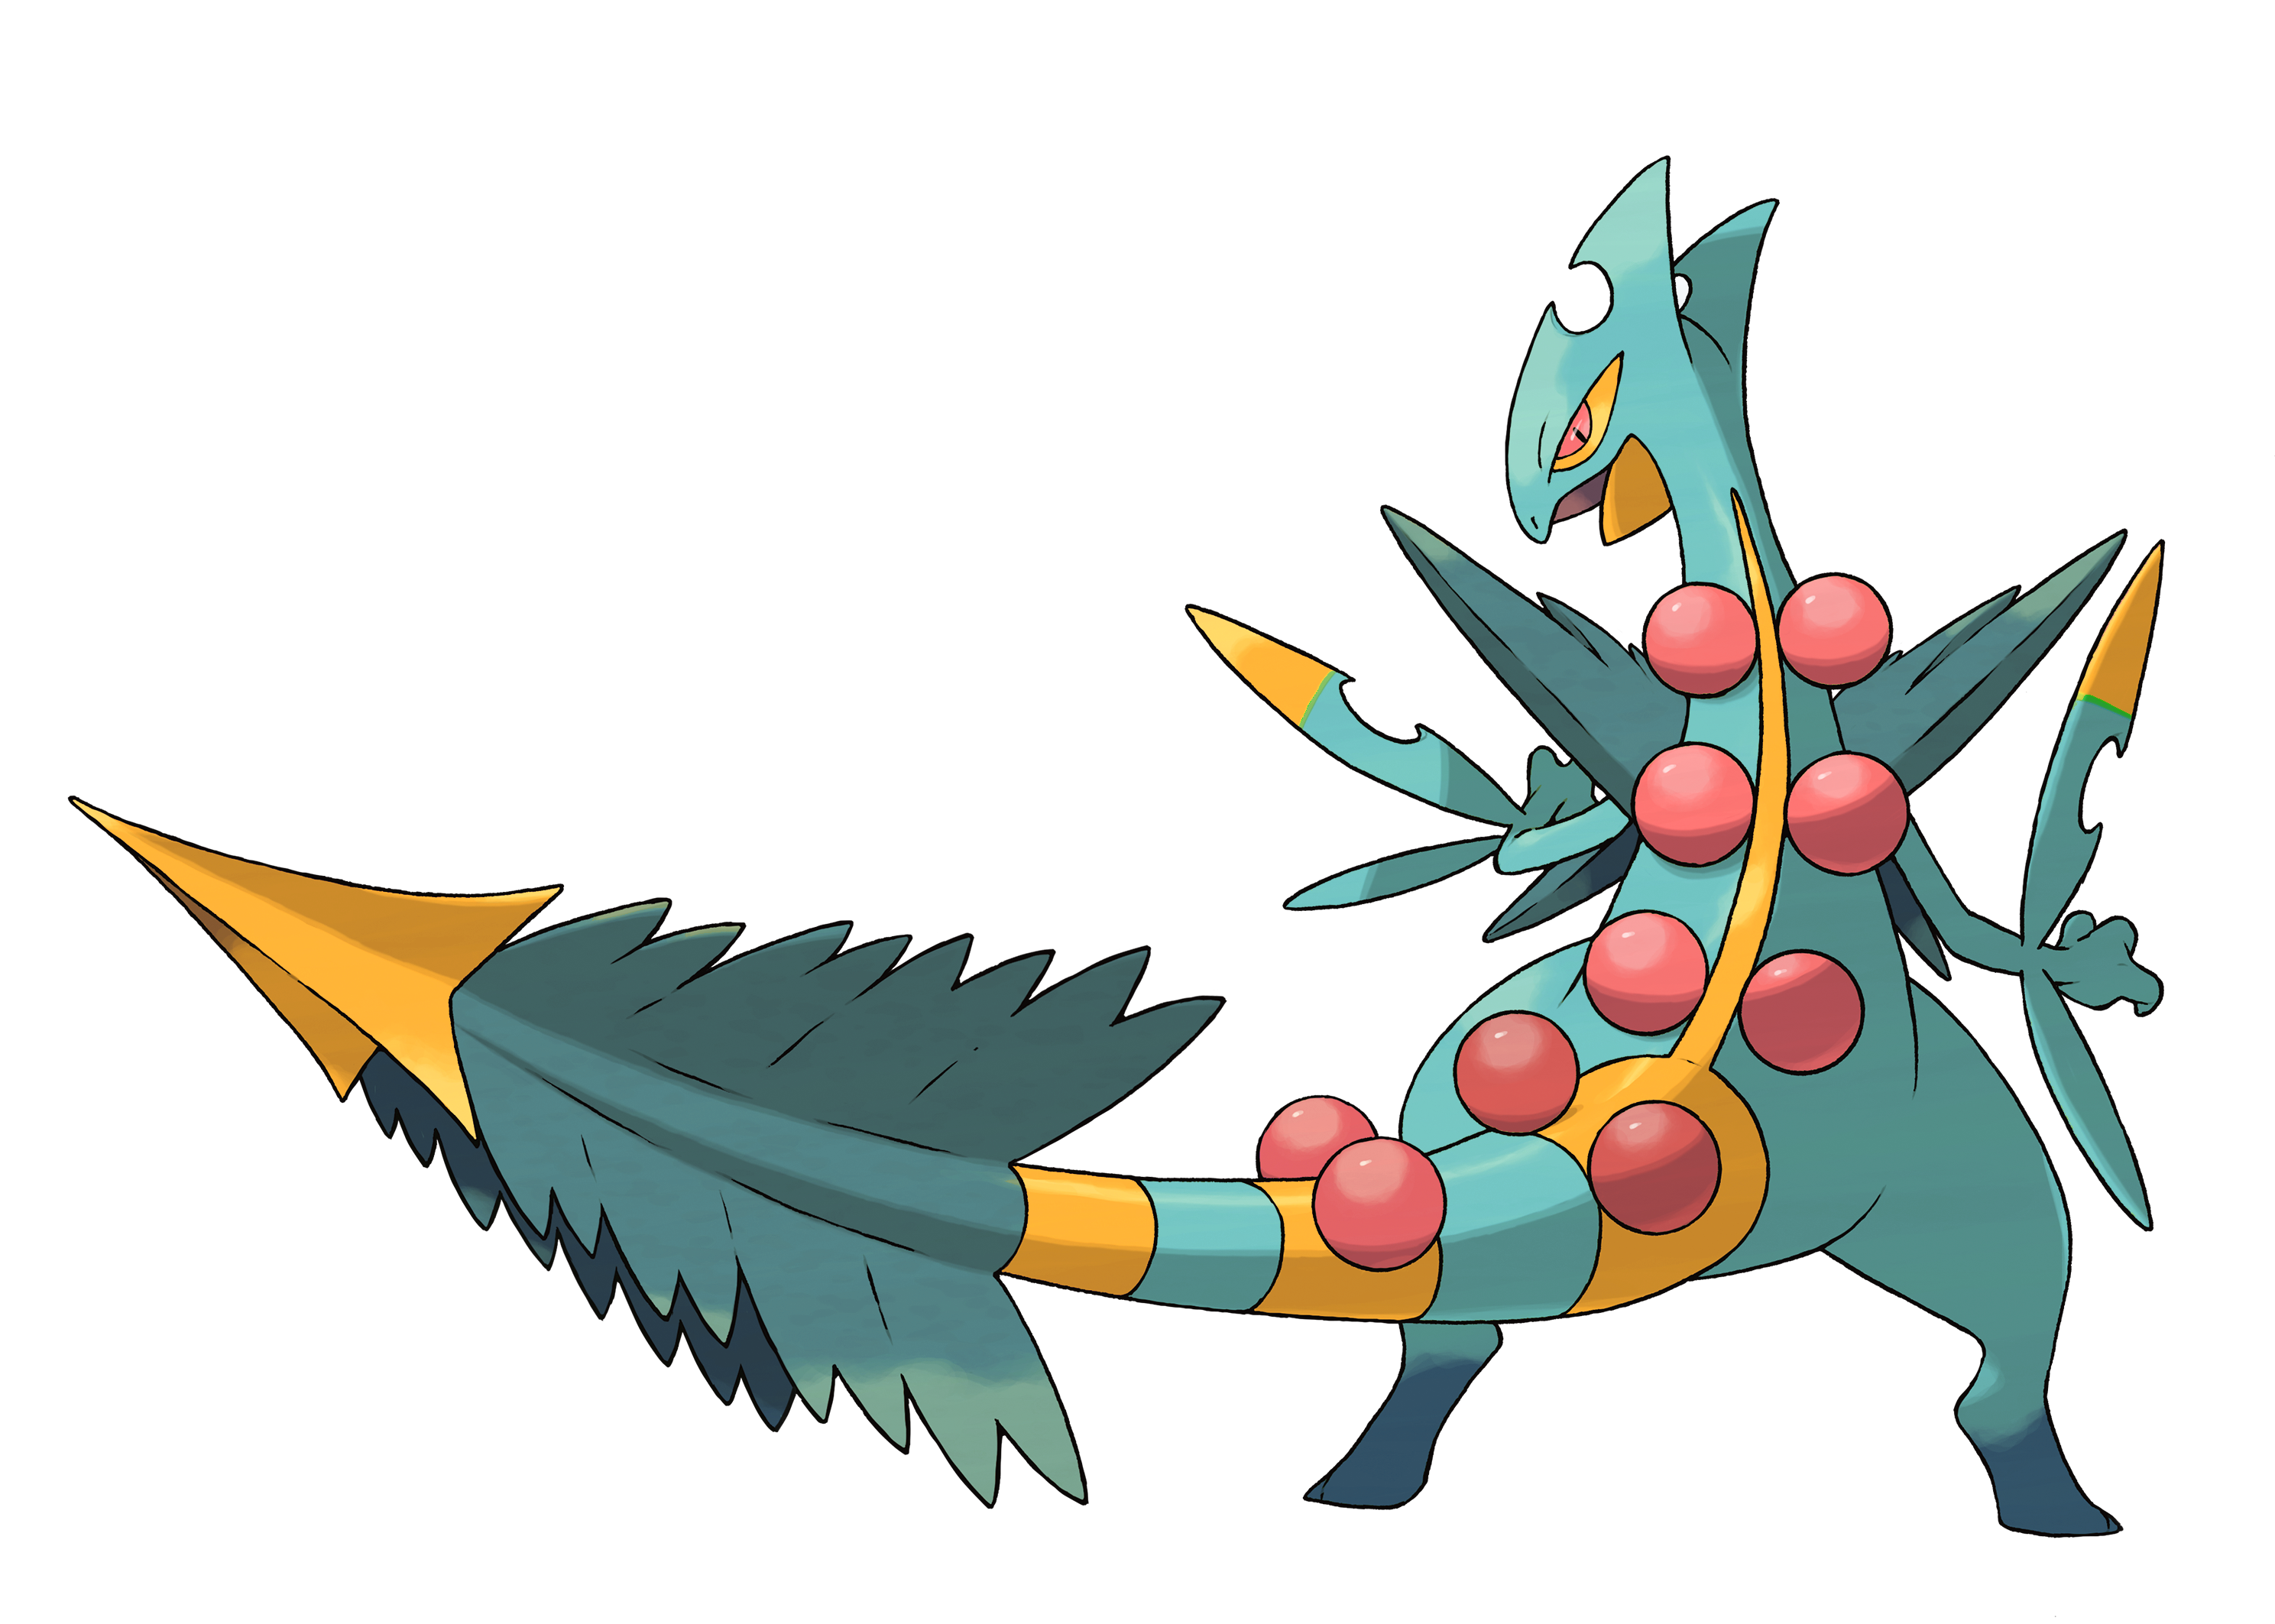 shiny sceptile - Google Search | Our Shiny Pokemon ...